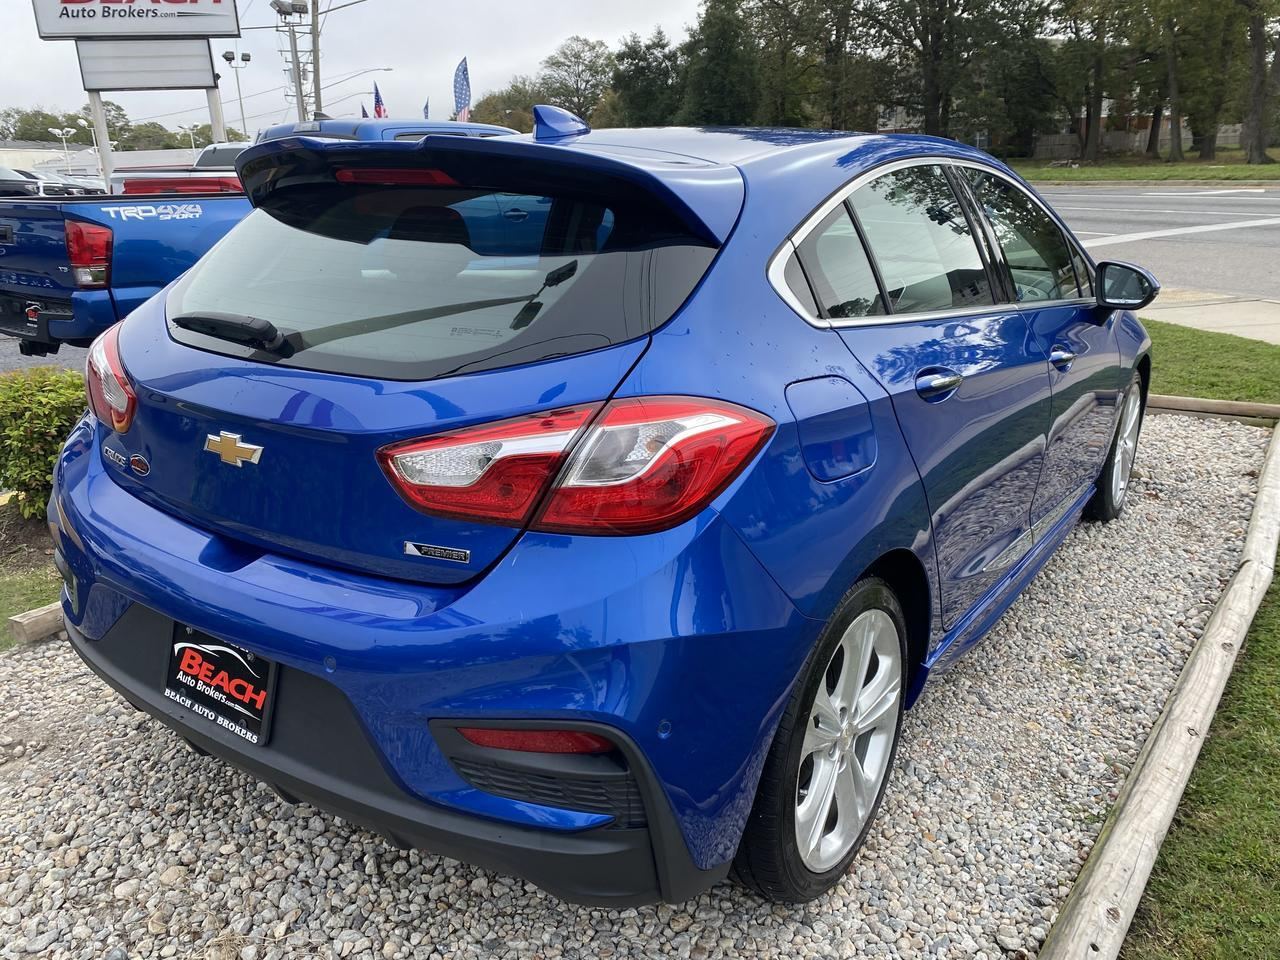 2017 CHEVROLET CRUZE PREMIER HATCHBACK, WARRANTY, RS PKG, LEATHER, SUNROOF, BLUETOOTH, HEATED/COOLED SEATS, CLEAN! Norfolk VA